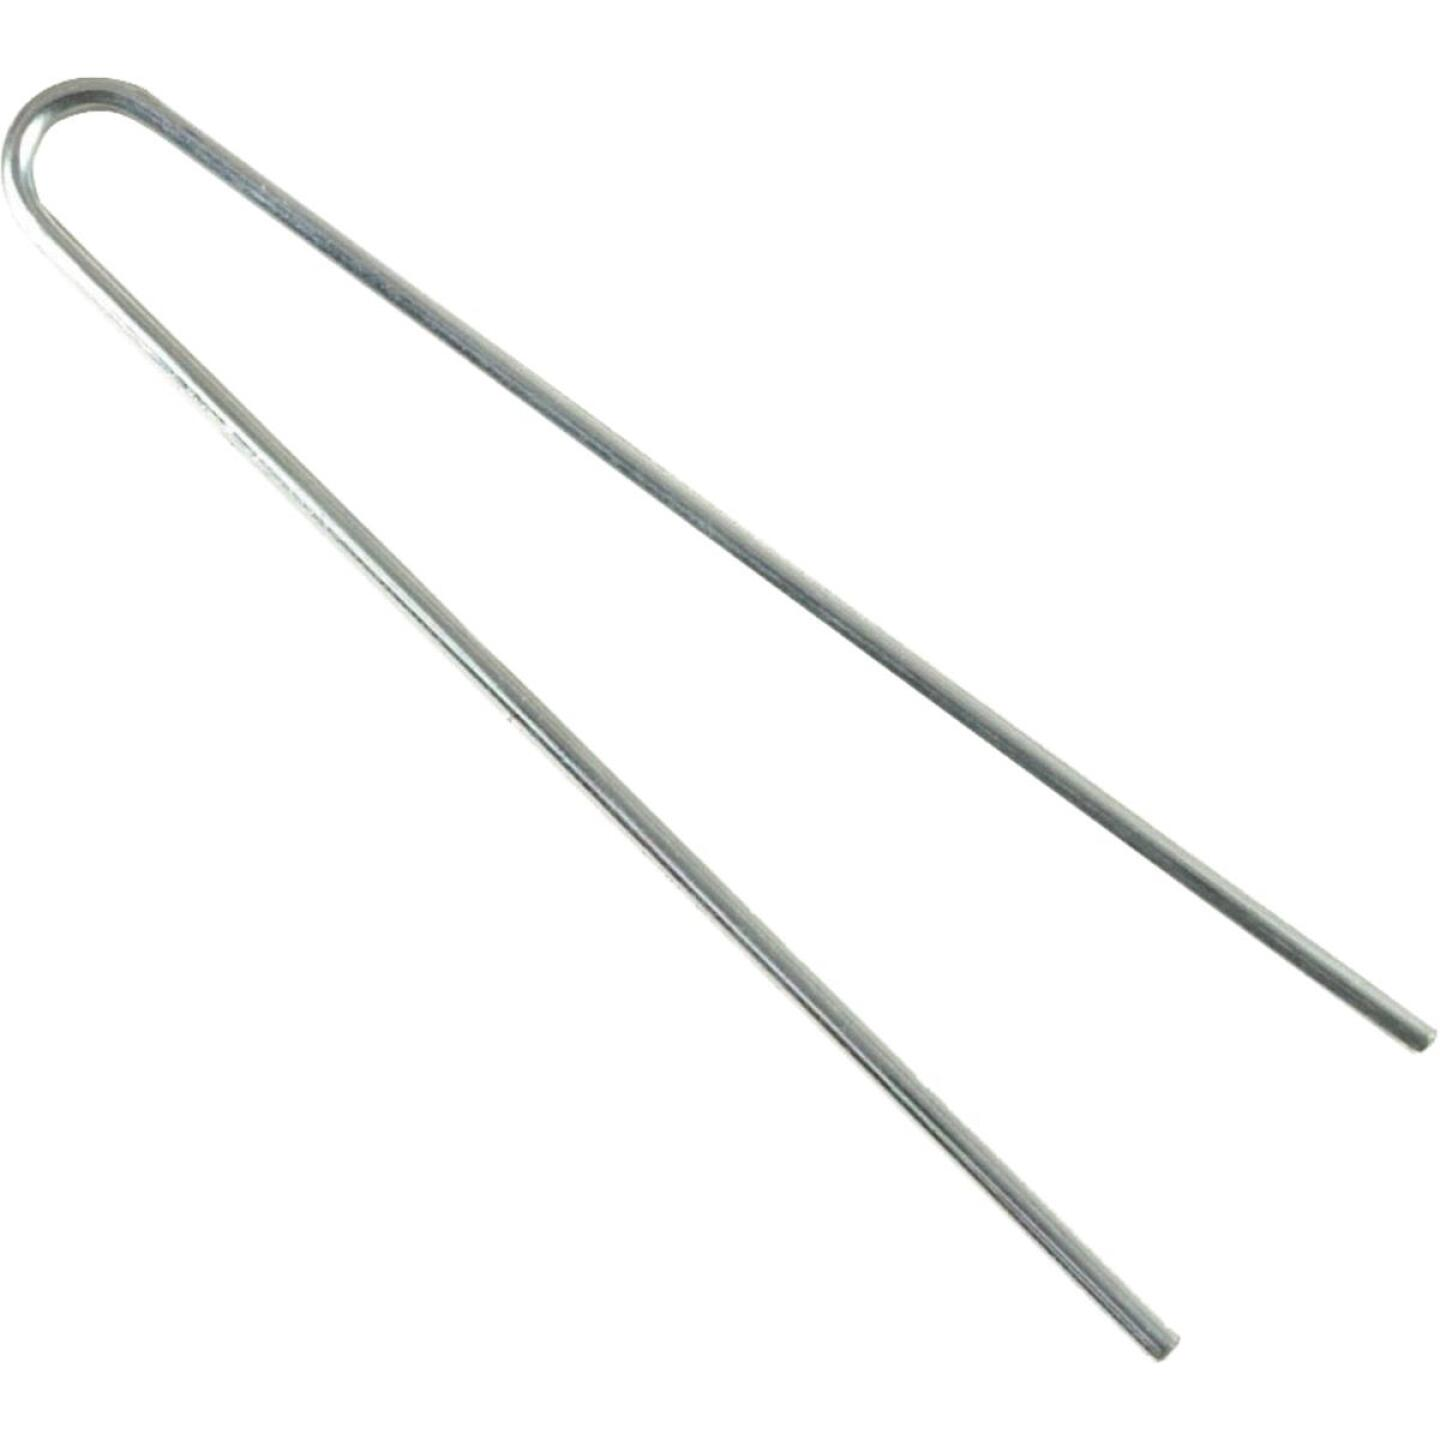 Raindrip 1/4 In. Tubing Galvanized Wire U-Support Stake (20-Pack) Image 2